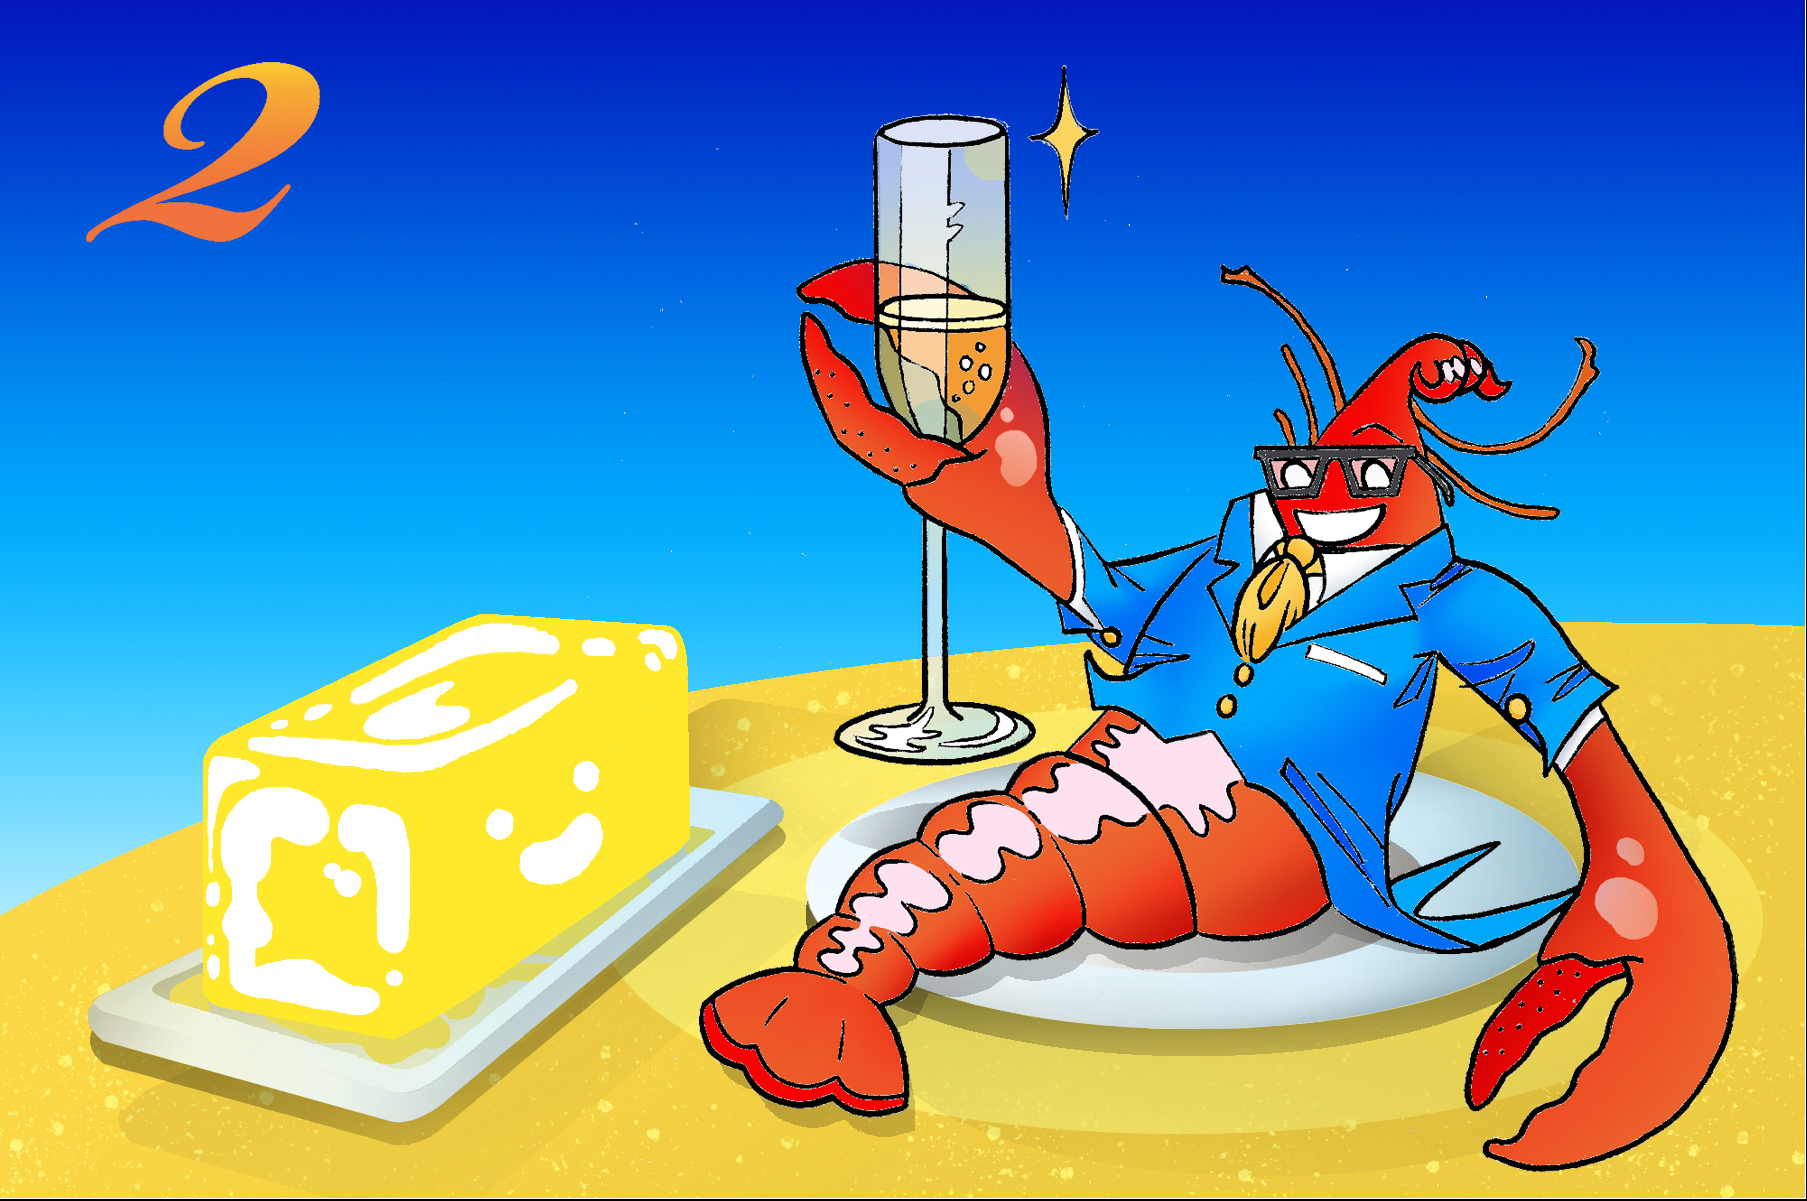 Malibu Seafood Lobster (Commission)